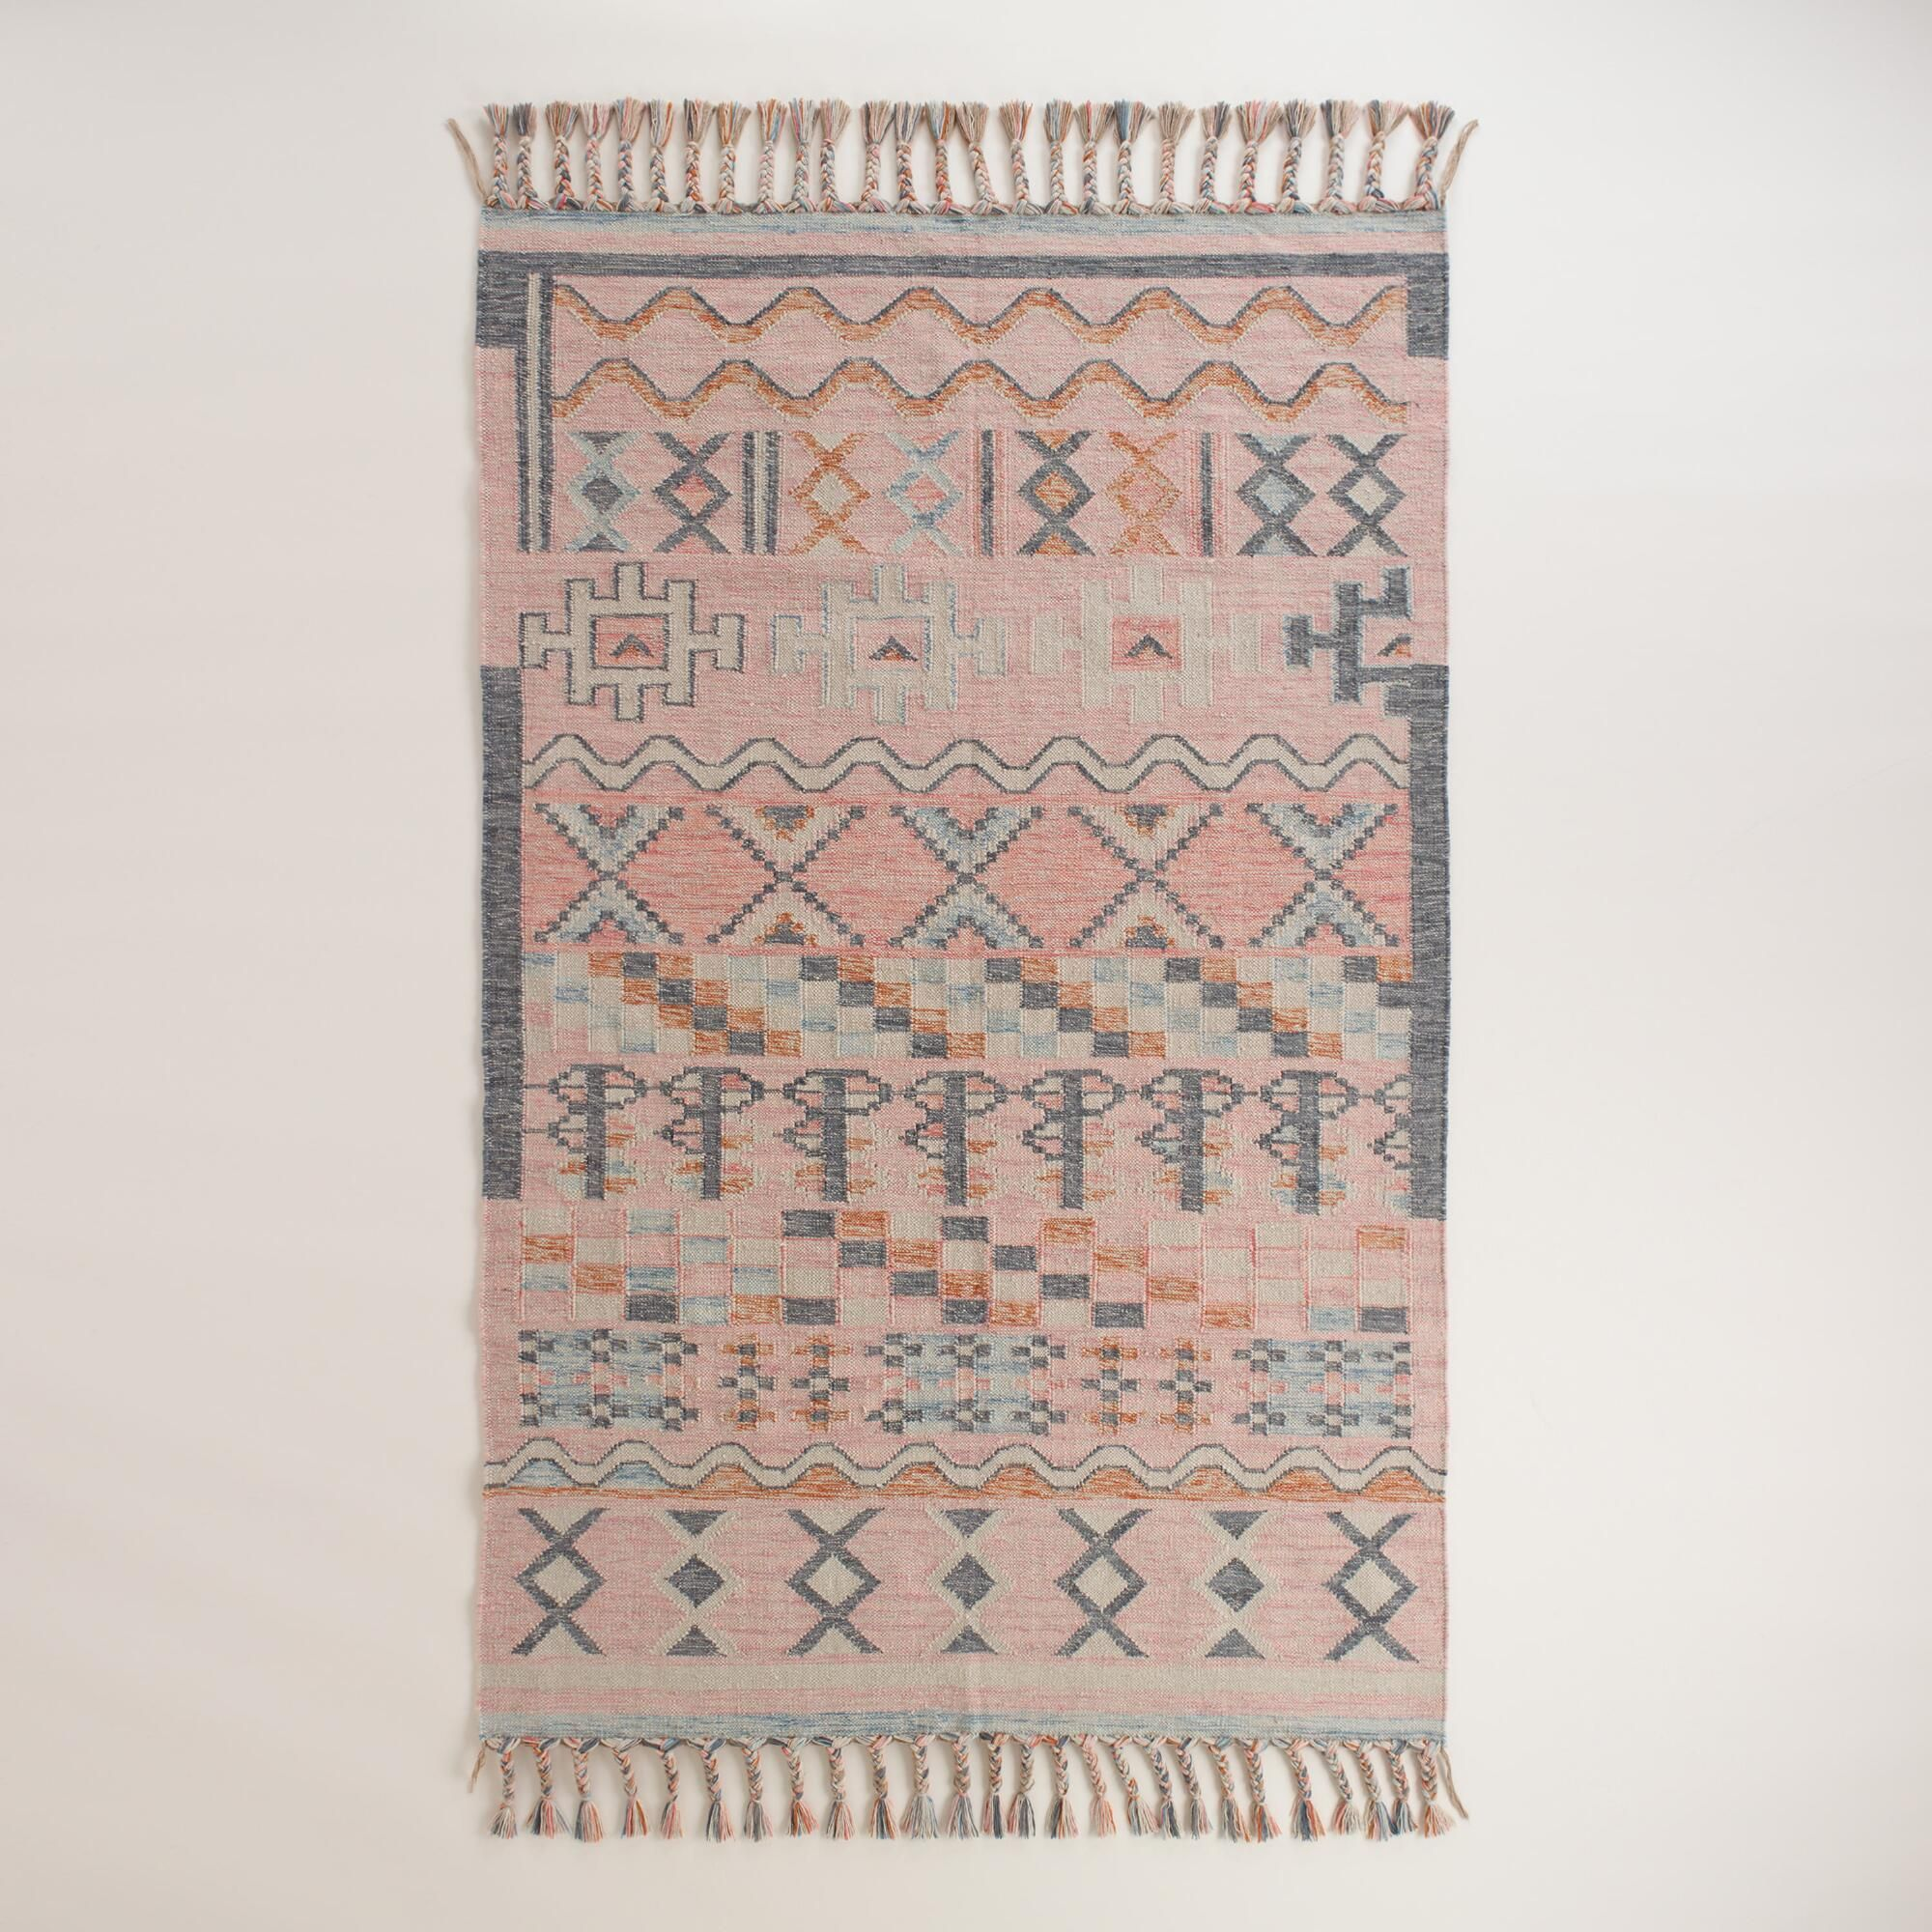 Hand Woven From Recycled Plastic Bottles Our Earth Conscious Indoor And Outdoor Kilim Features